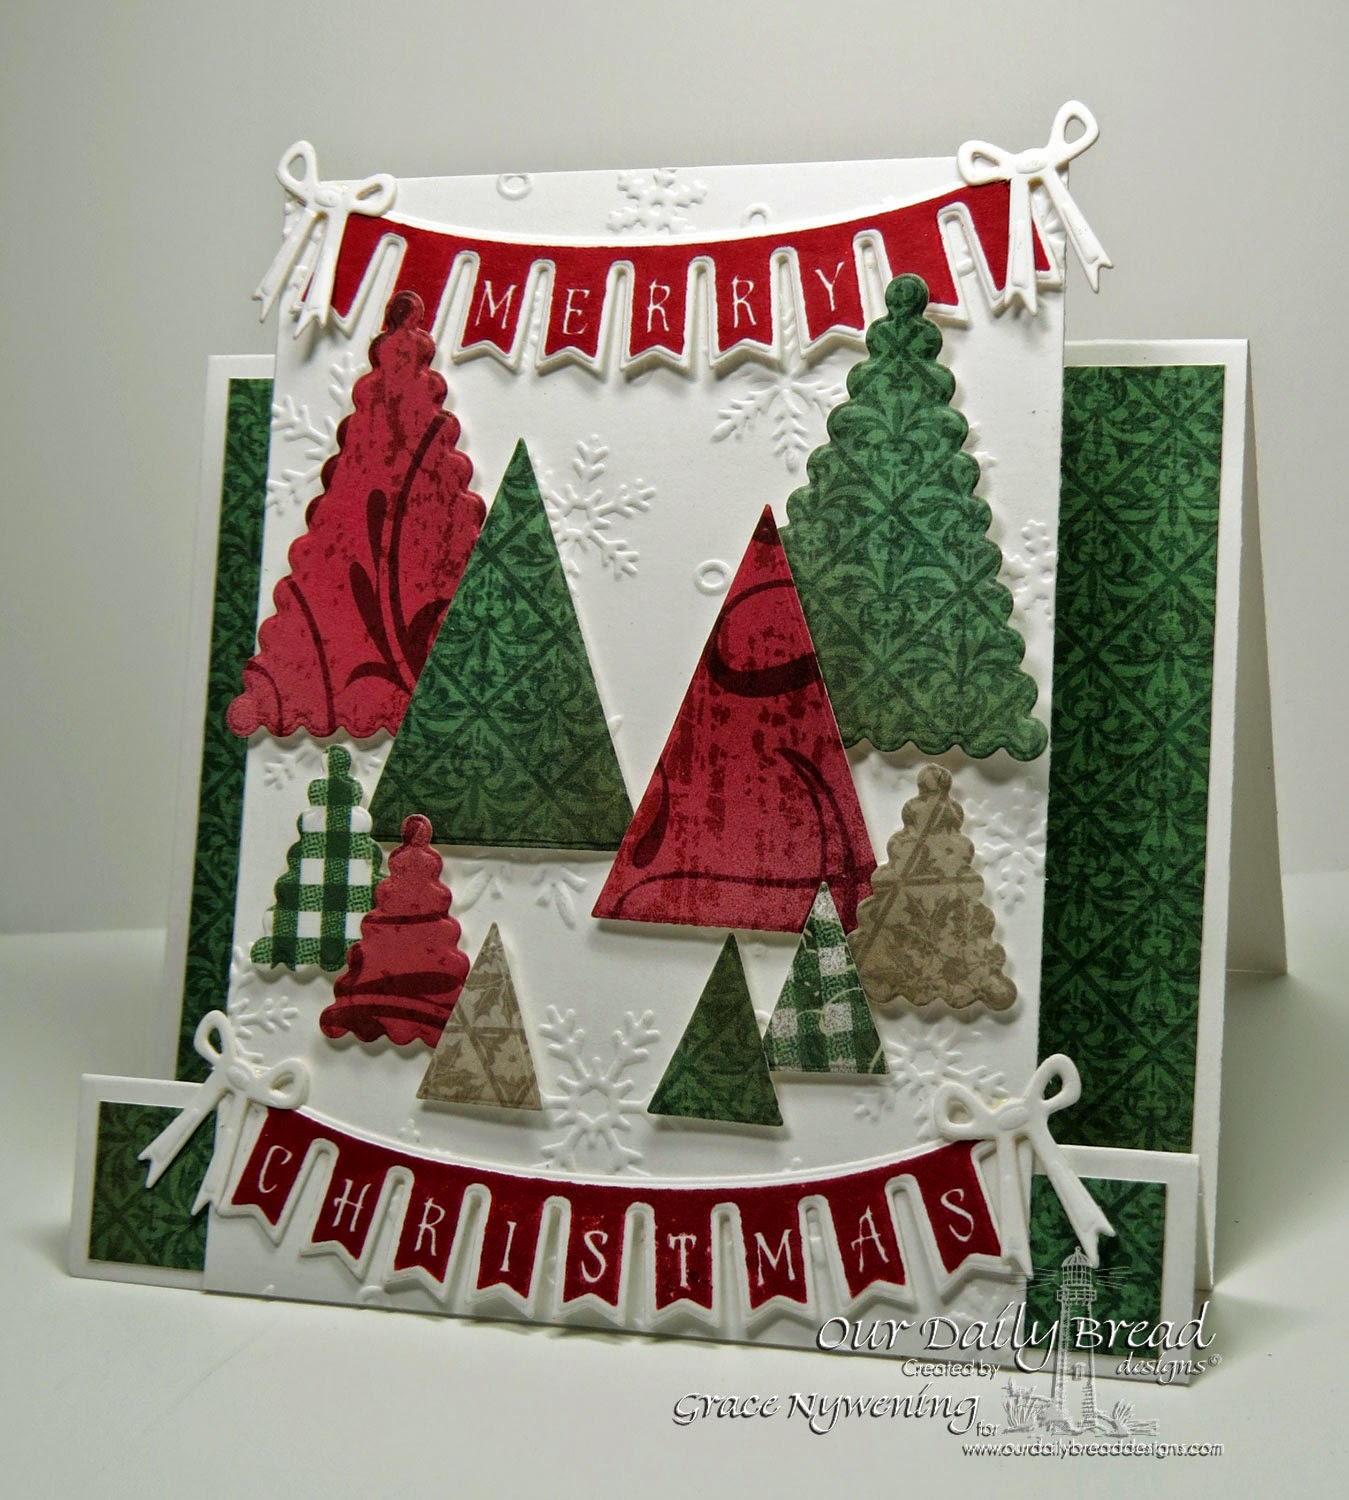 ODBD stamps: Christmas Pennant Swag, designed by Grace Nywening